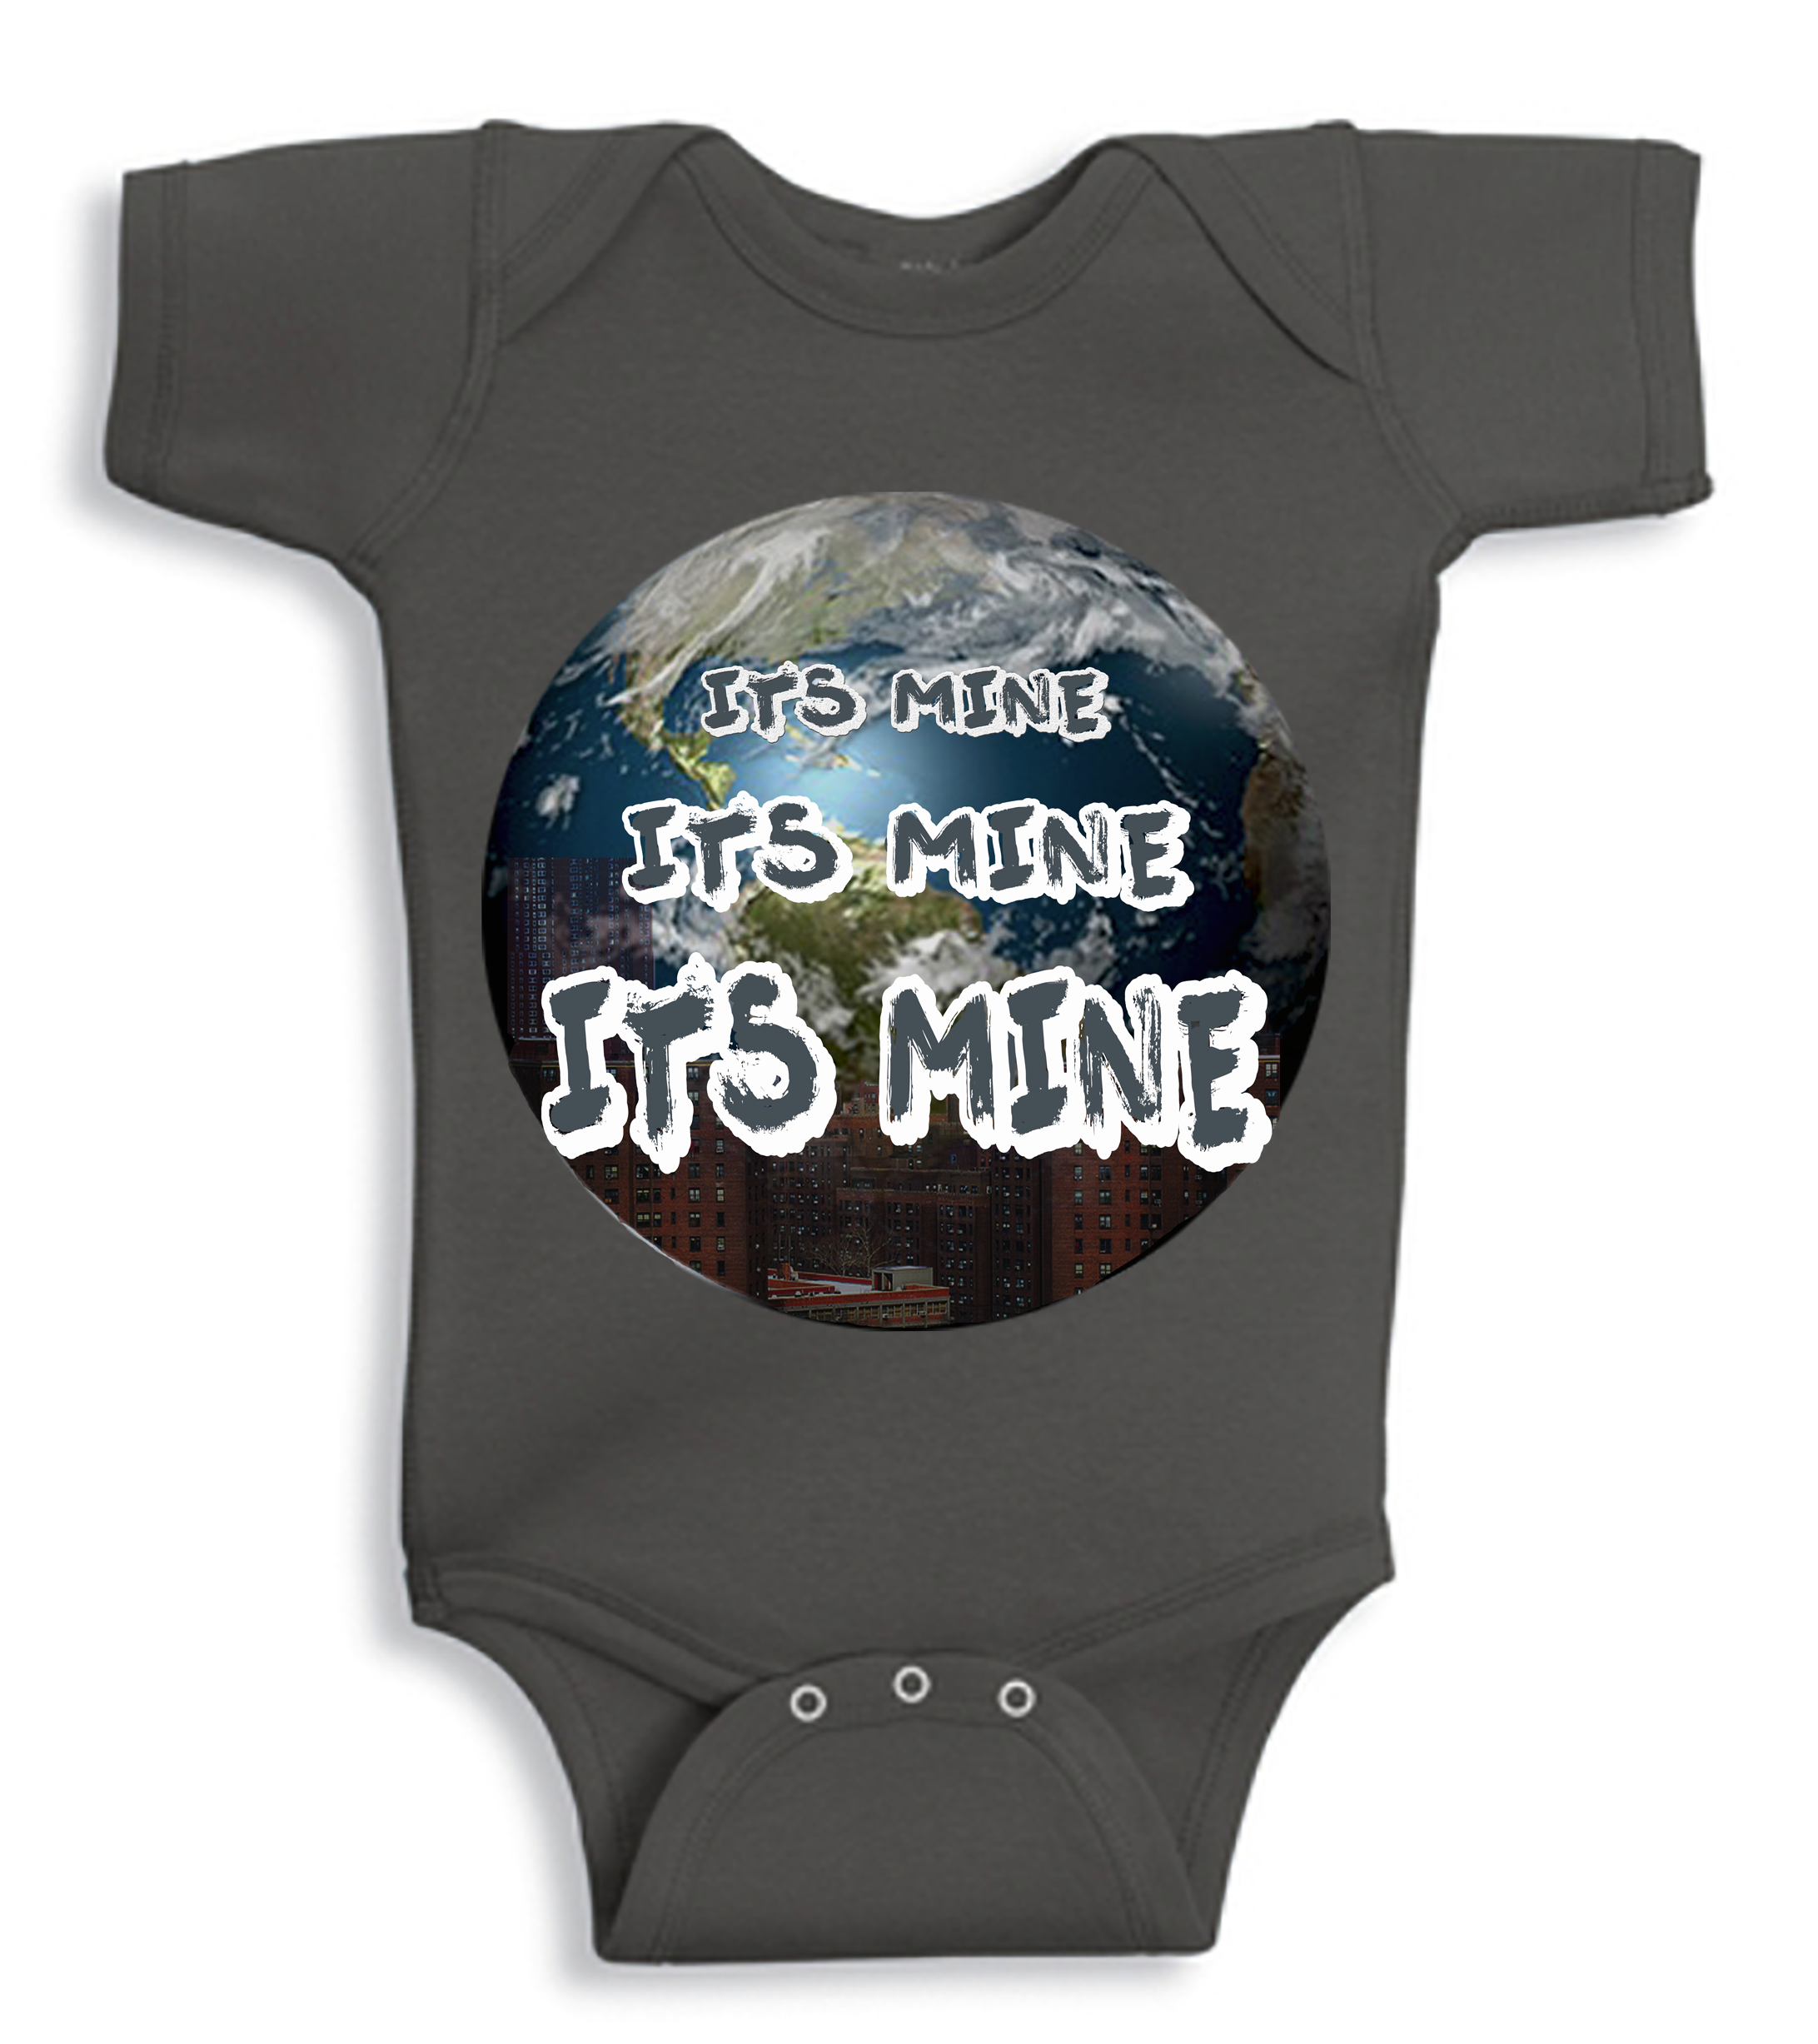 It's Mine Charcoal Baby Onesie